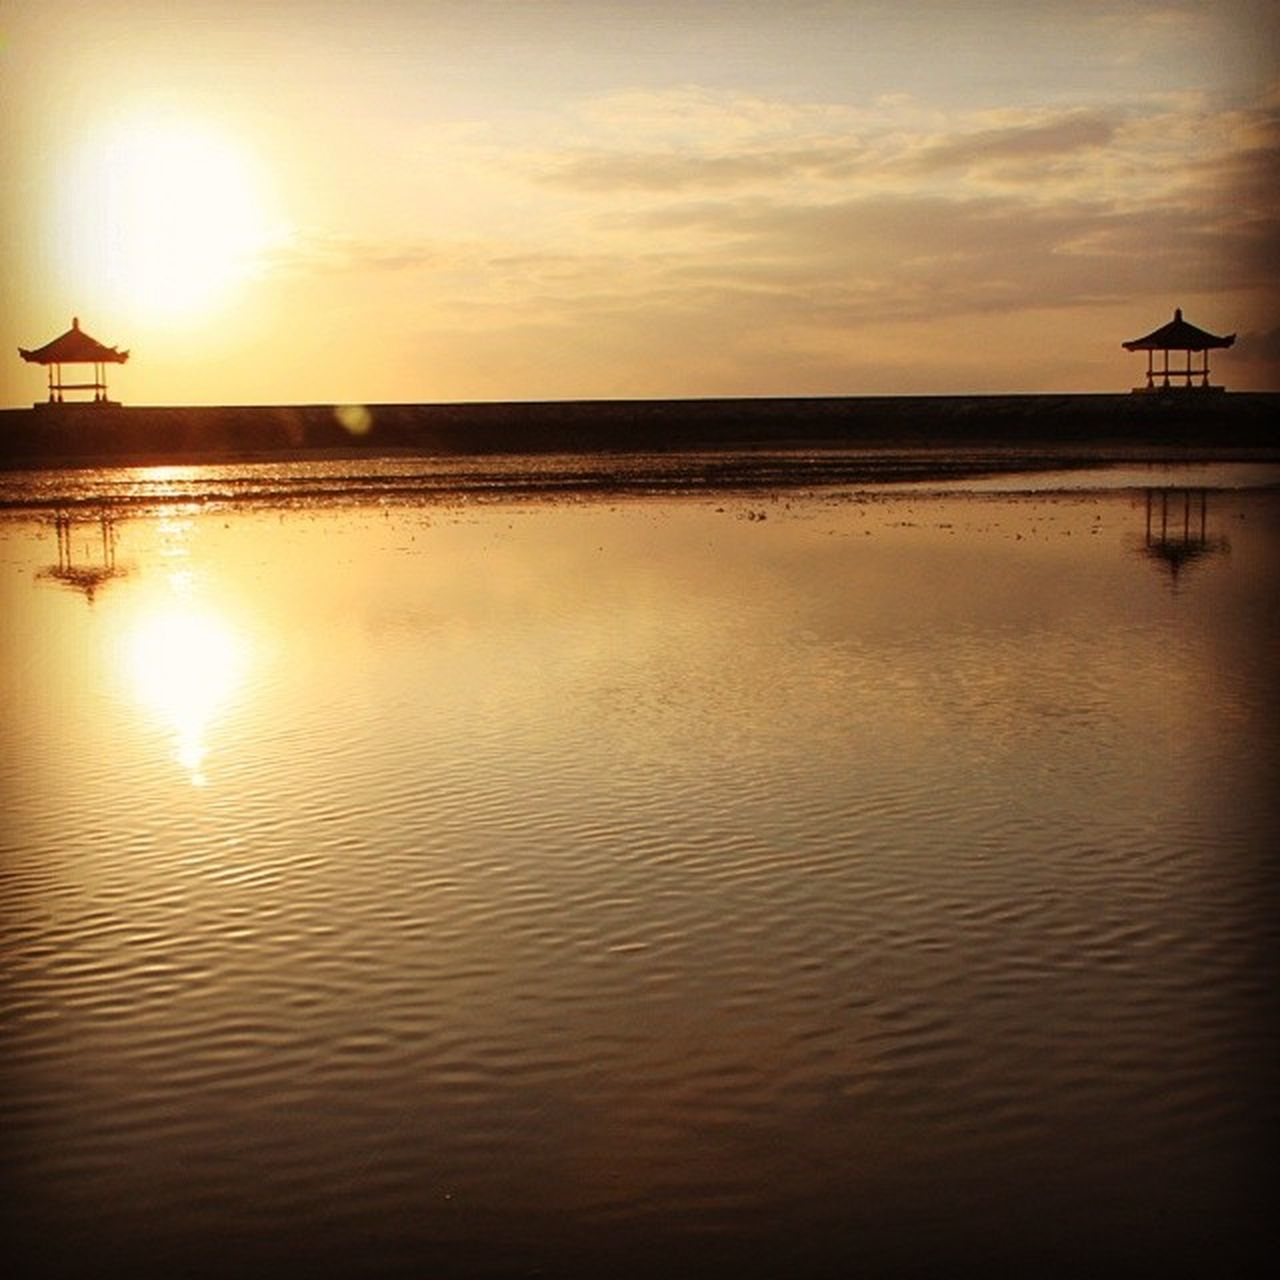 sunset, water, sea, reflection, sky, tranquility, nature, architecture, silhouette, scenics, beauty in nature, tranquil scene, cloud - sky, built structure, beach, travel destinations, outdoors, building exterior, no people, horizon over water, day